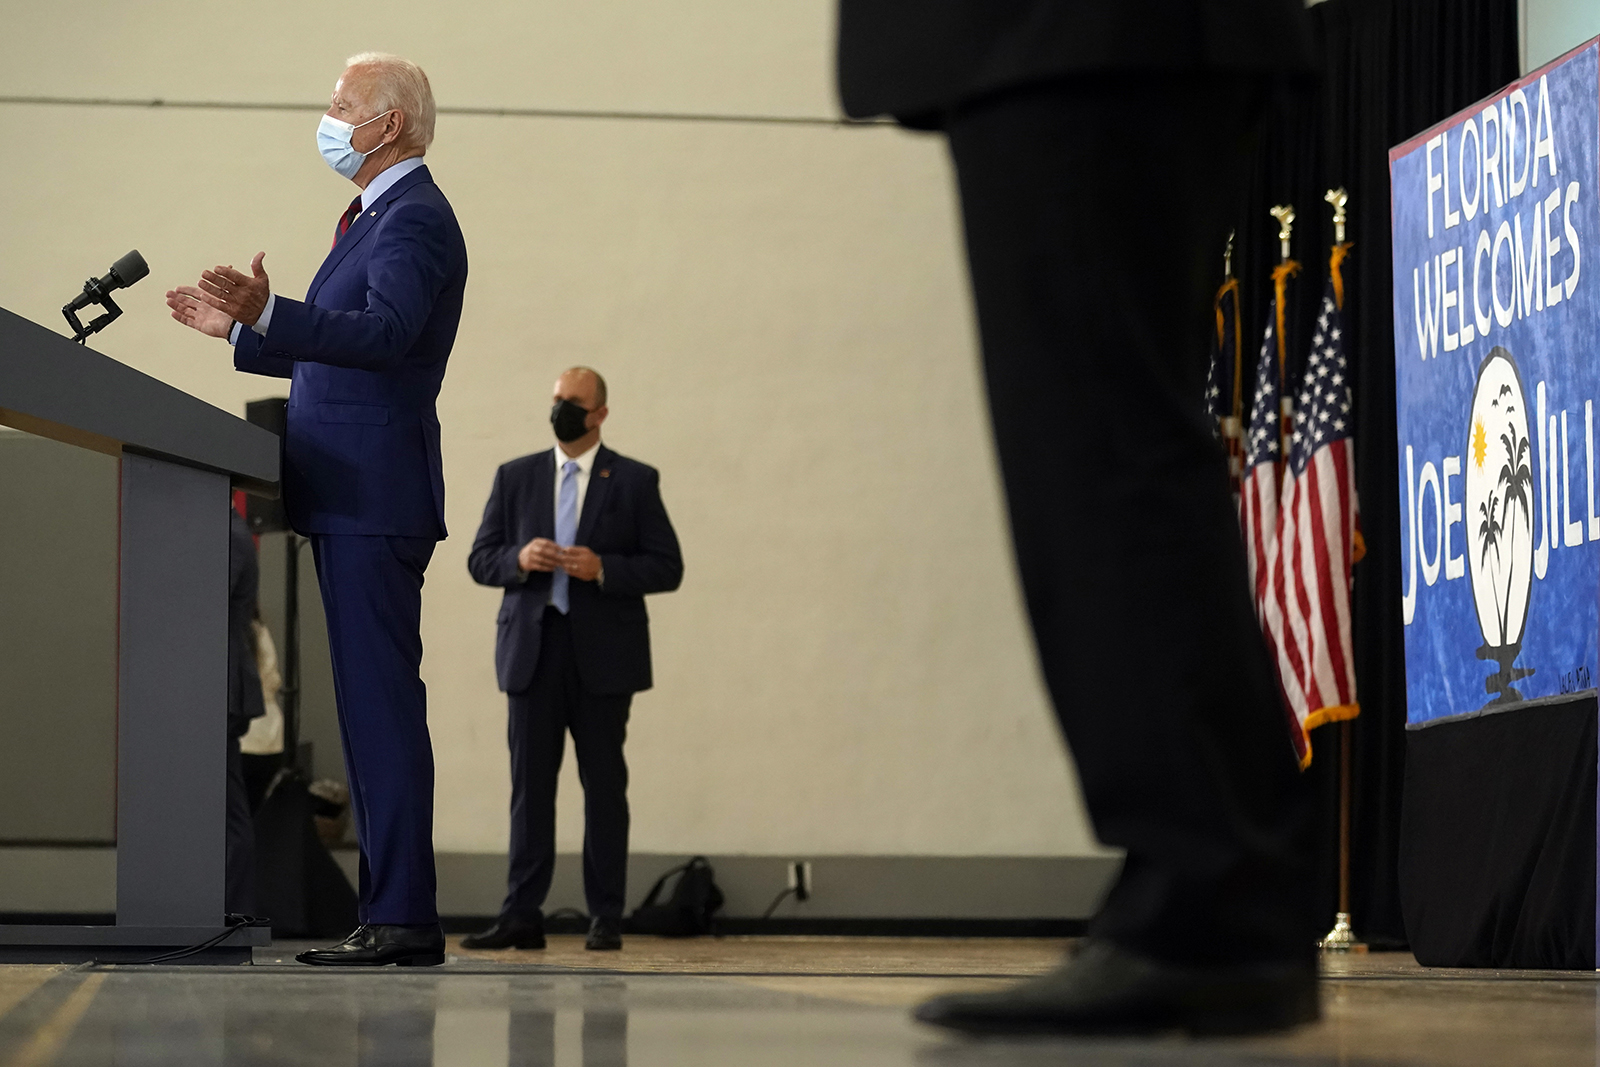 Democratic presidential candidate Joe Biden speaks at Jose Marti Gym on Monday in Miami.